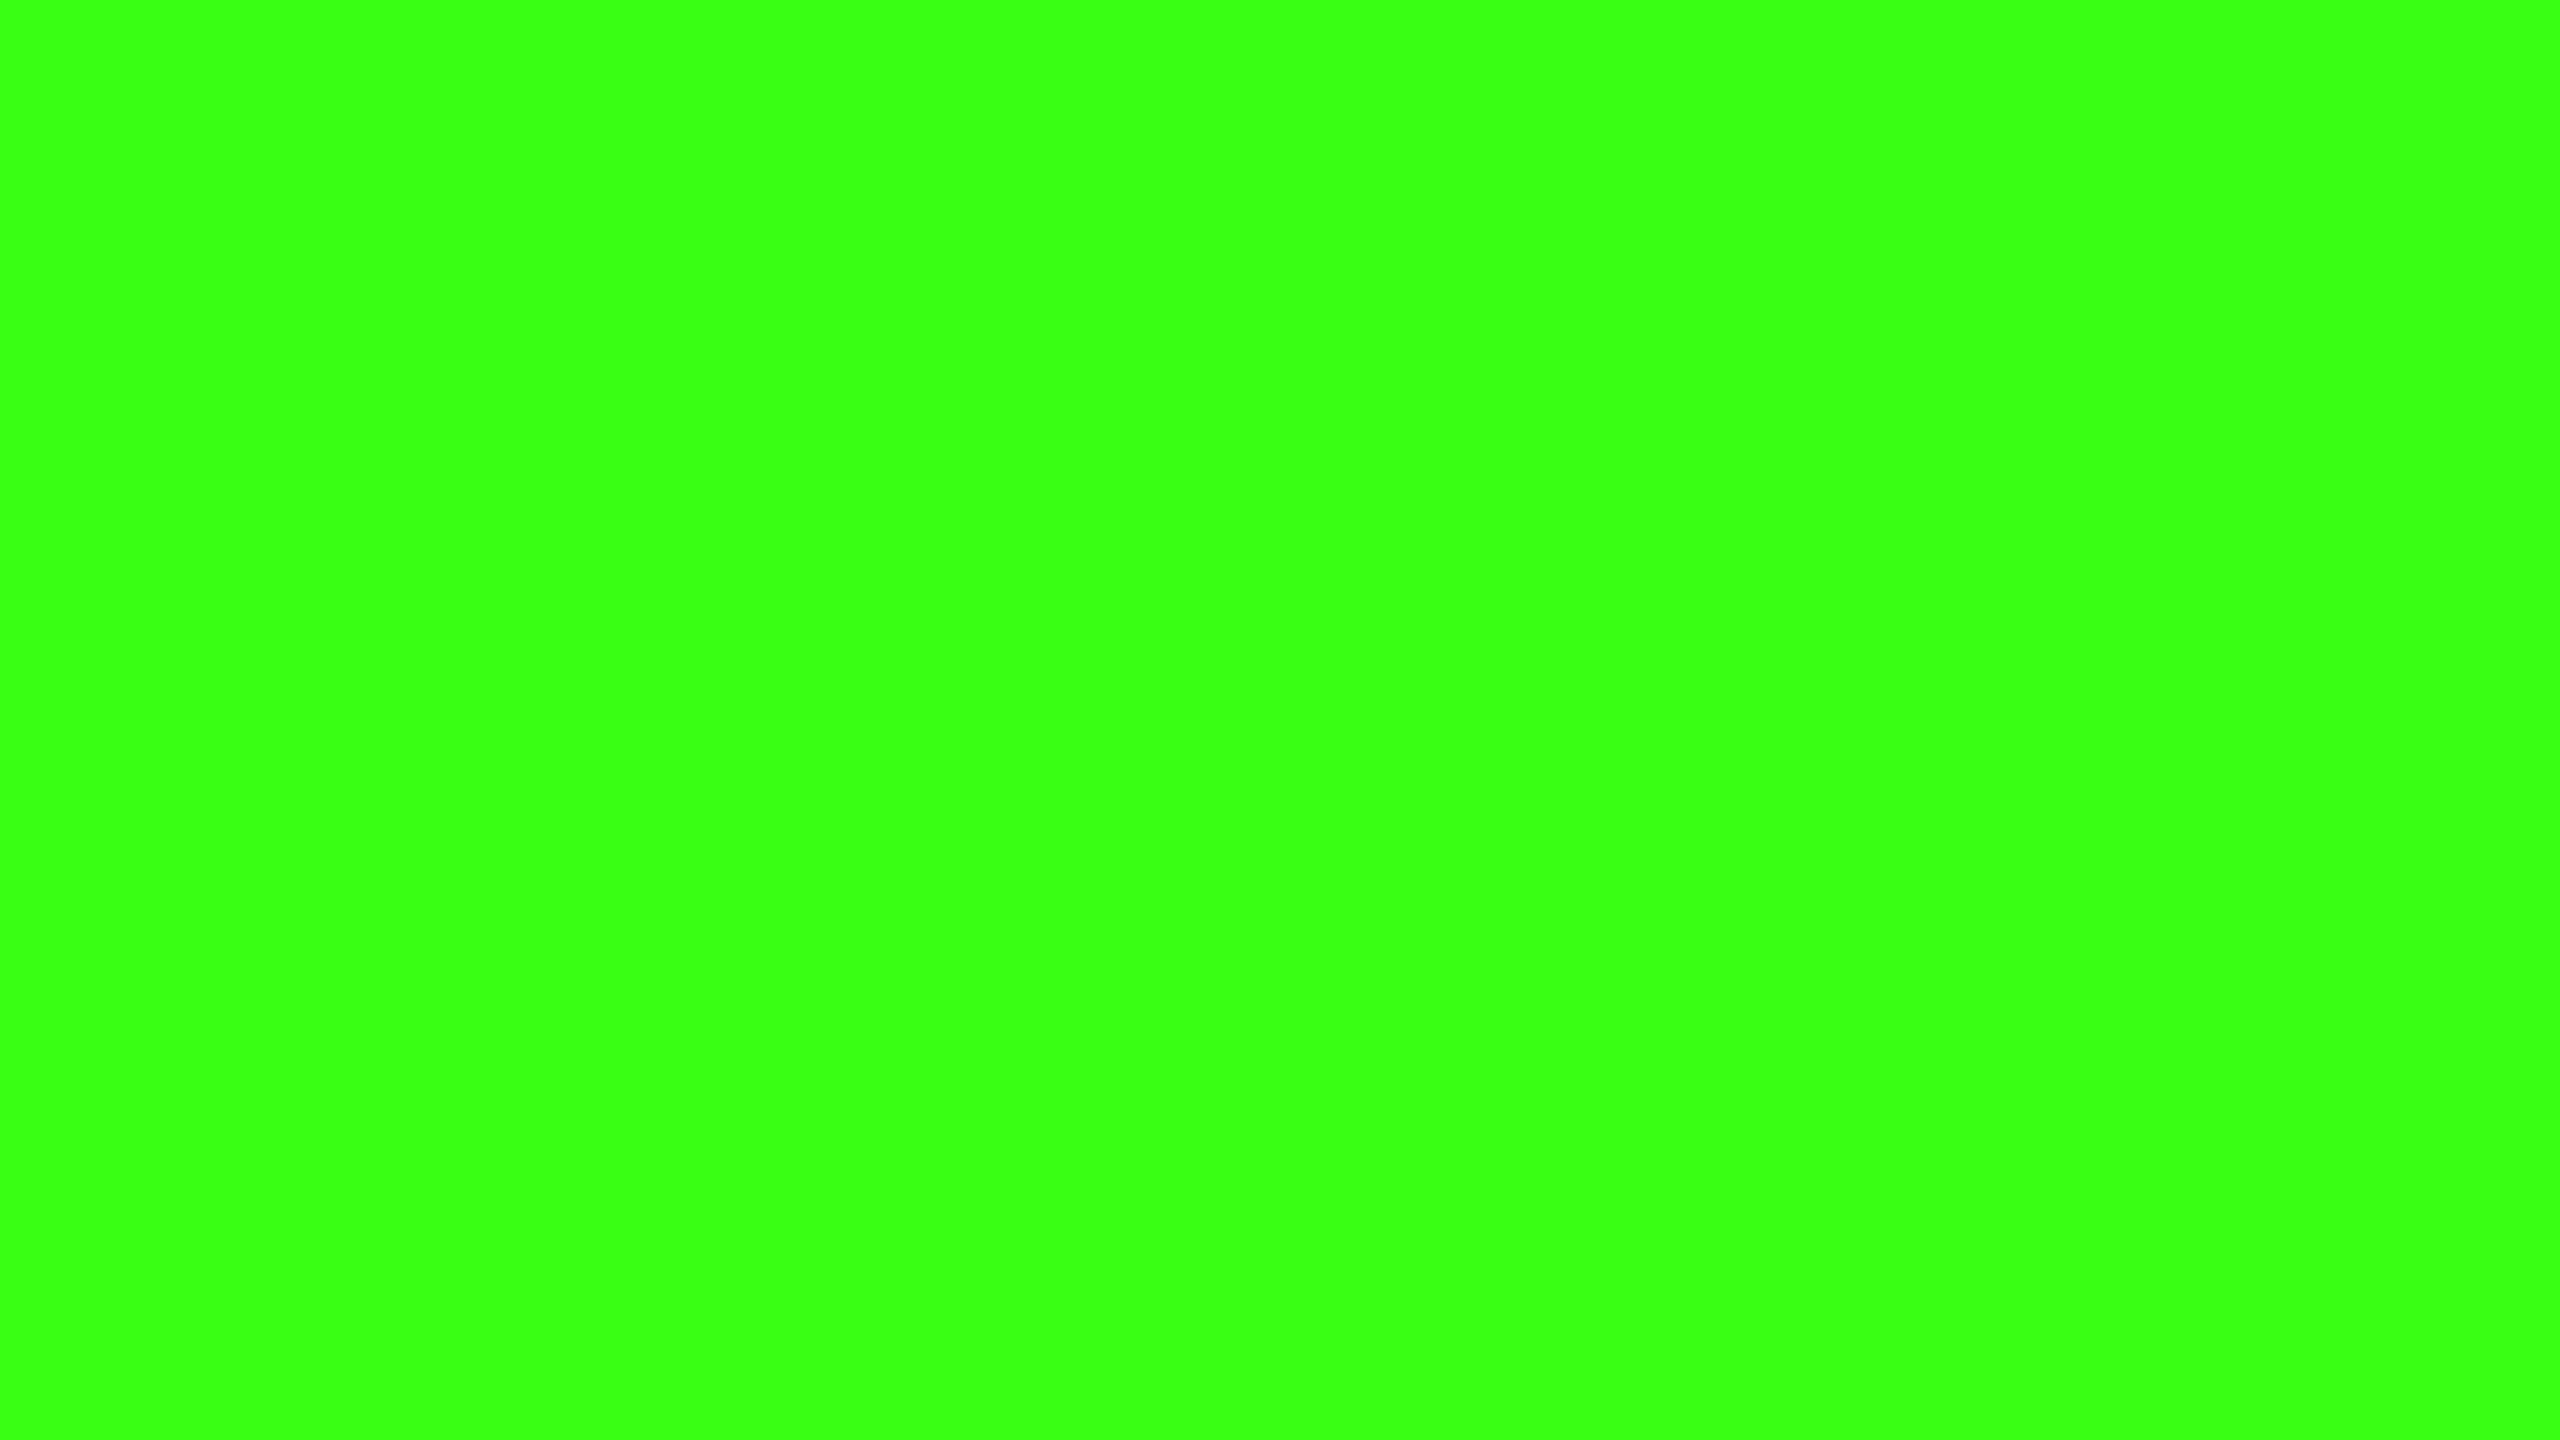 Neon Green Wallpaper